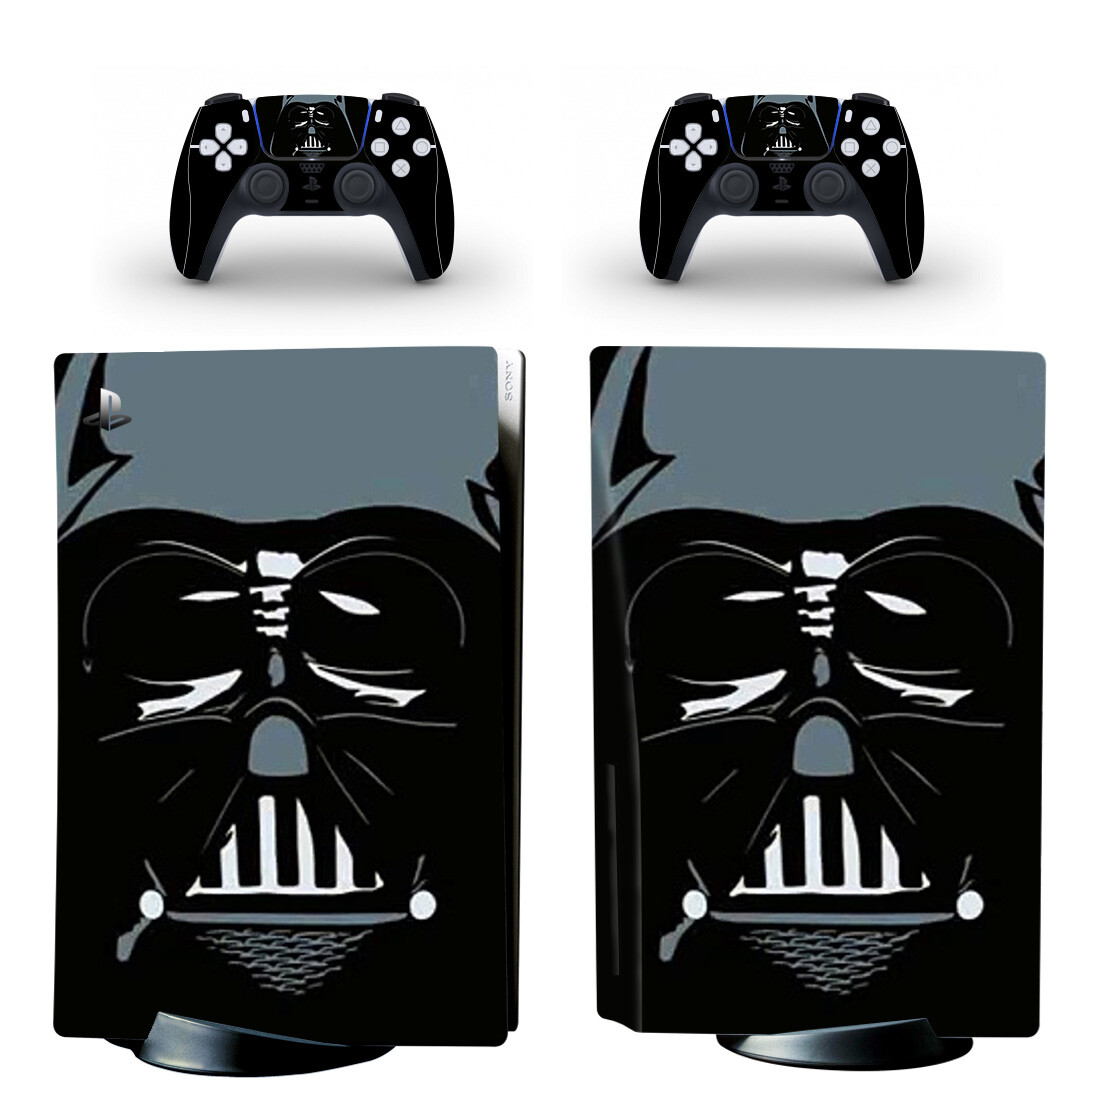 Star Wars Skin Sticker For PlayStation 5 And Controllers